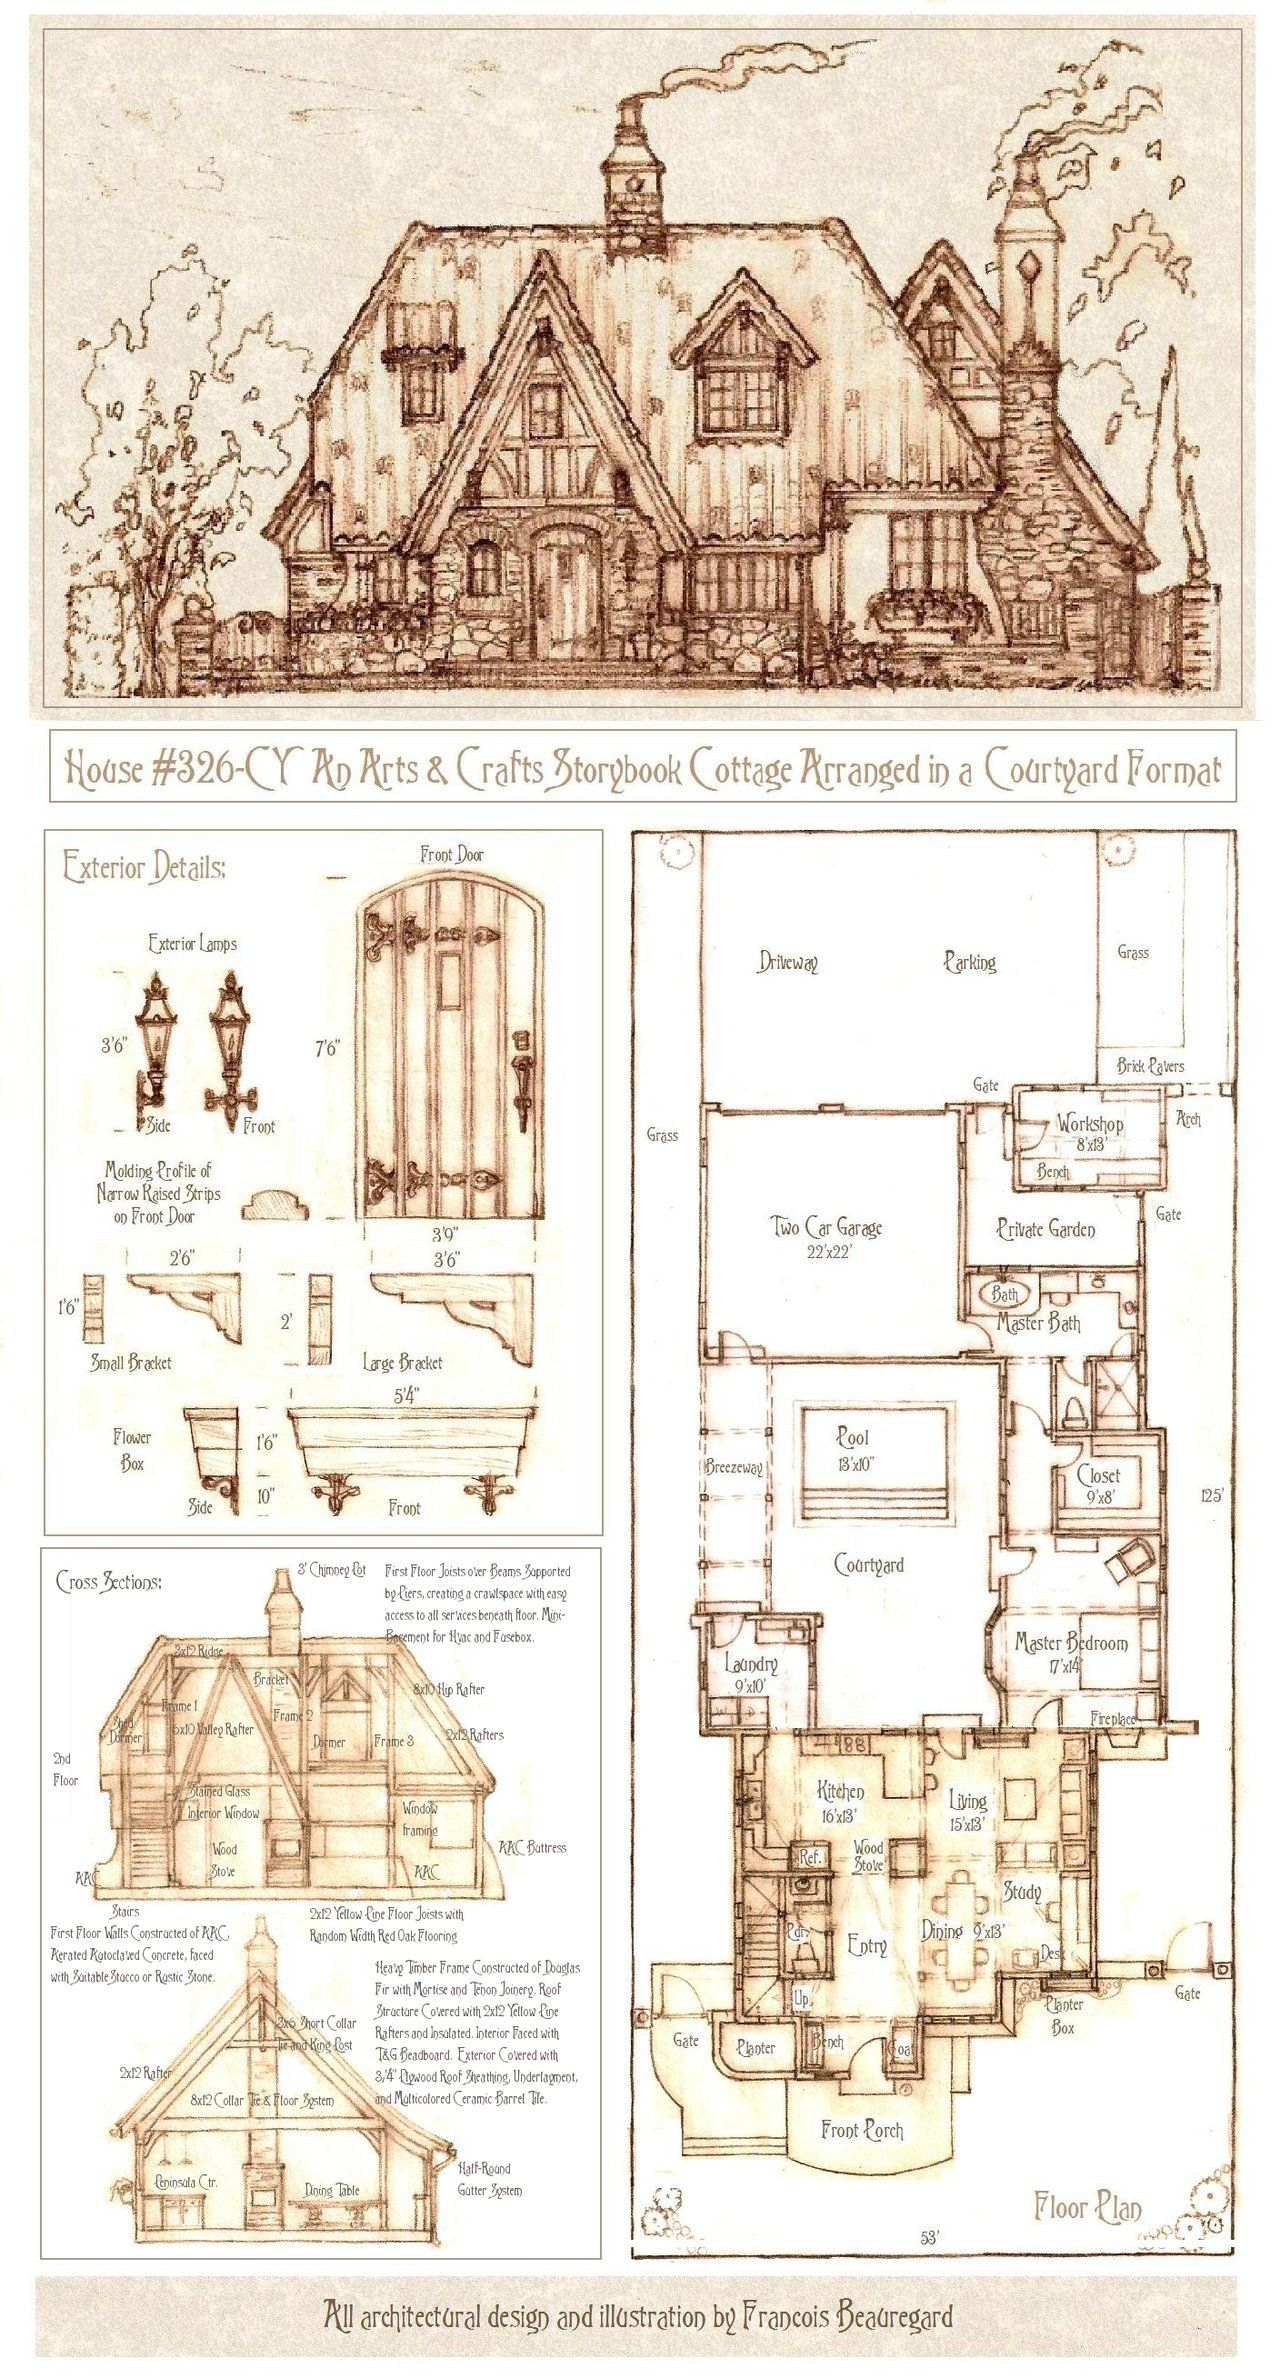 House 326 Cy Cottage Plan Courtyard House Plans Storybook Cottage